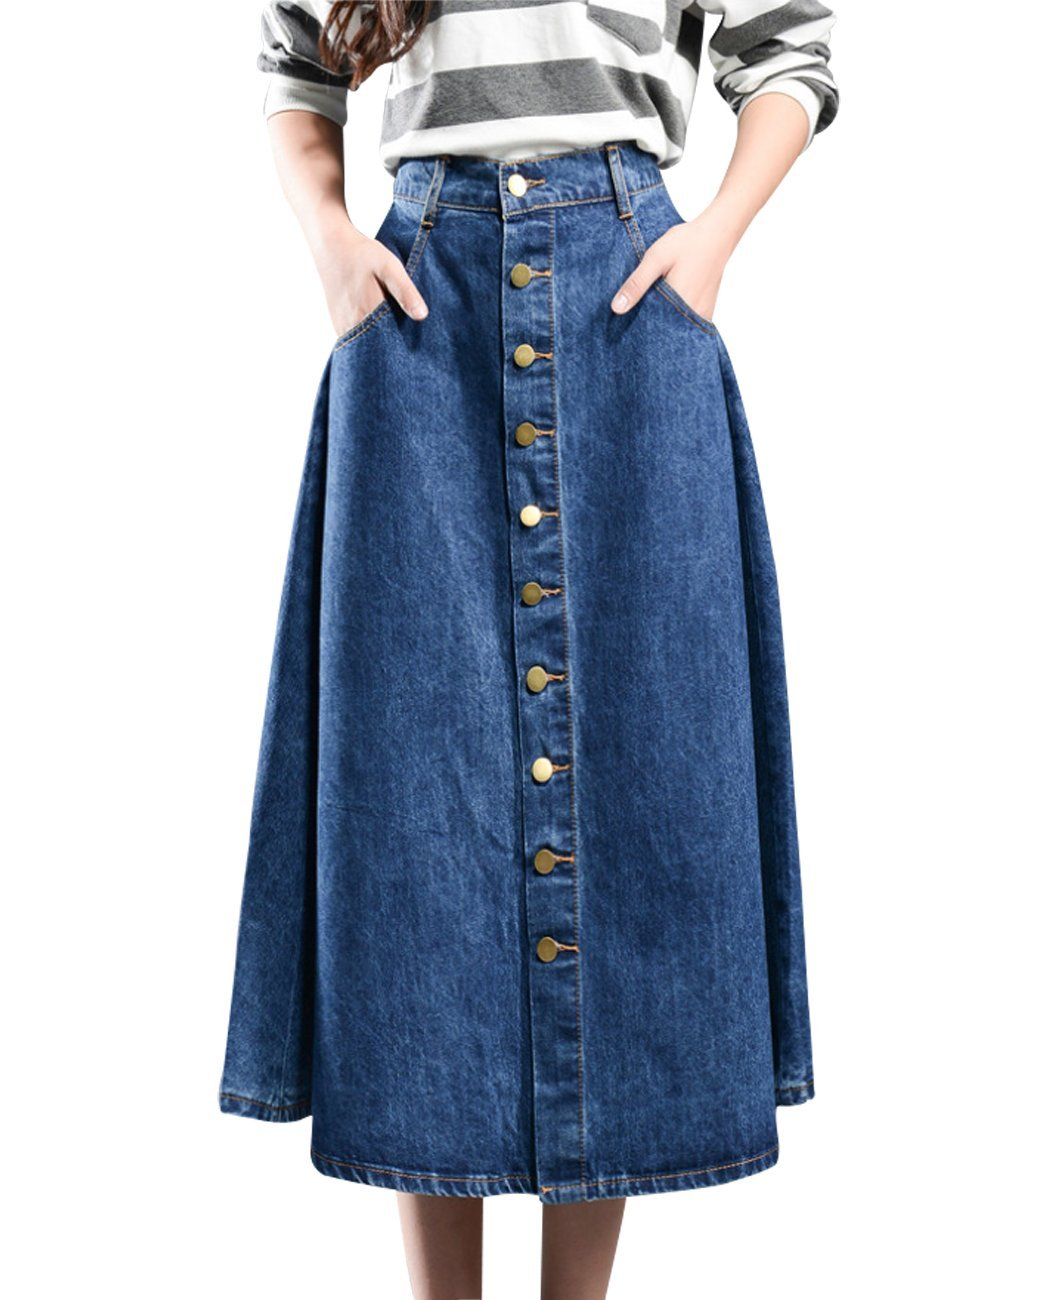 Wincolor Women's Button Down Flare A-line Pleated Long Denim Jean Skirt